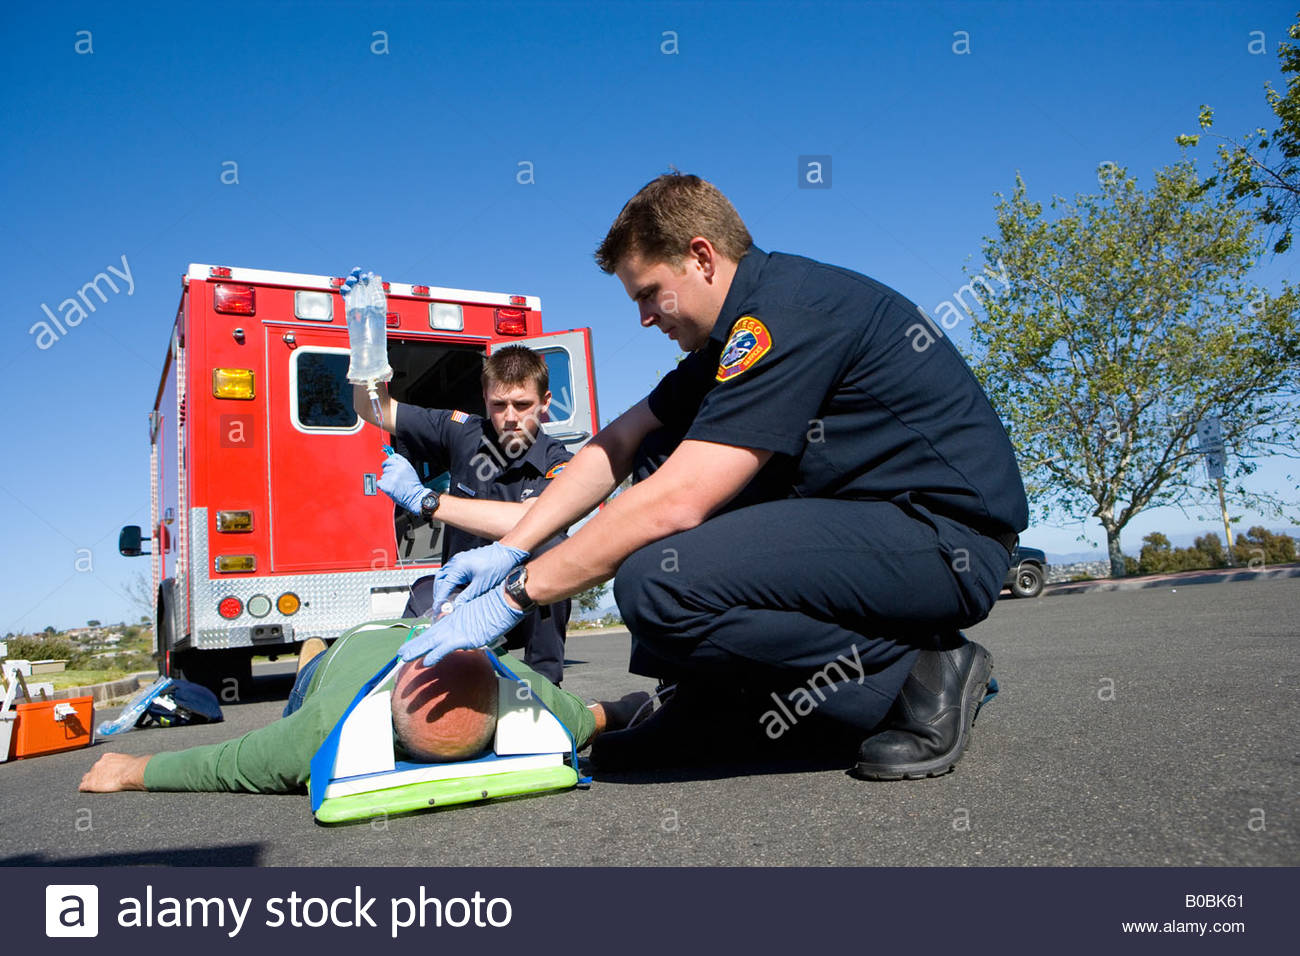 Paramedic and colleague helping man on stretcher, low angle view - Stock Image